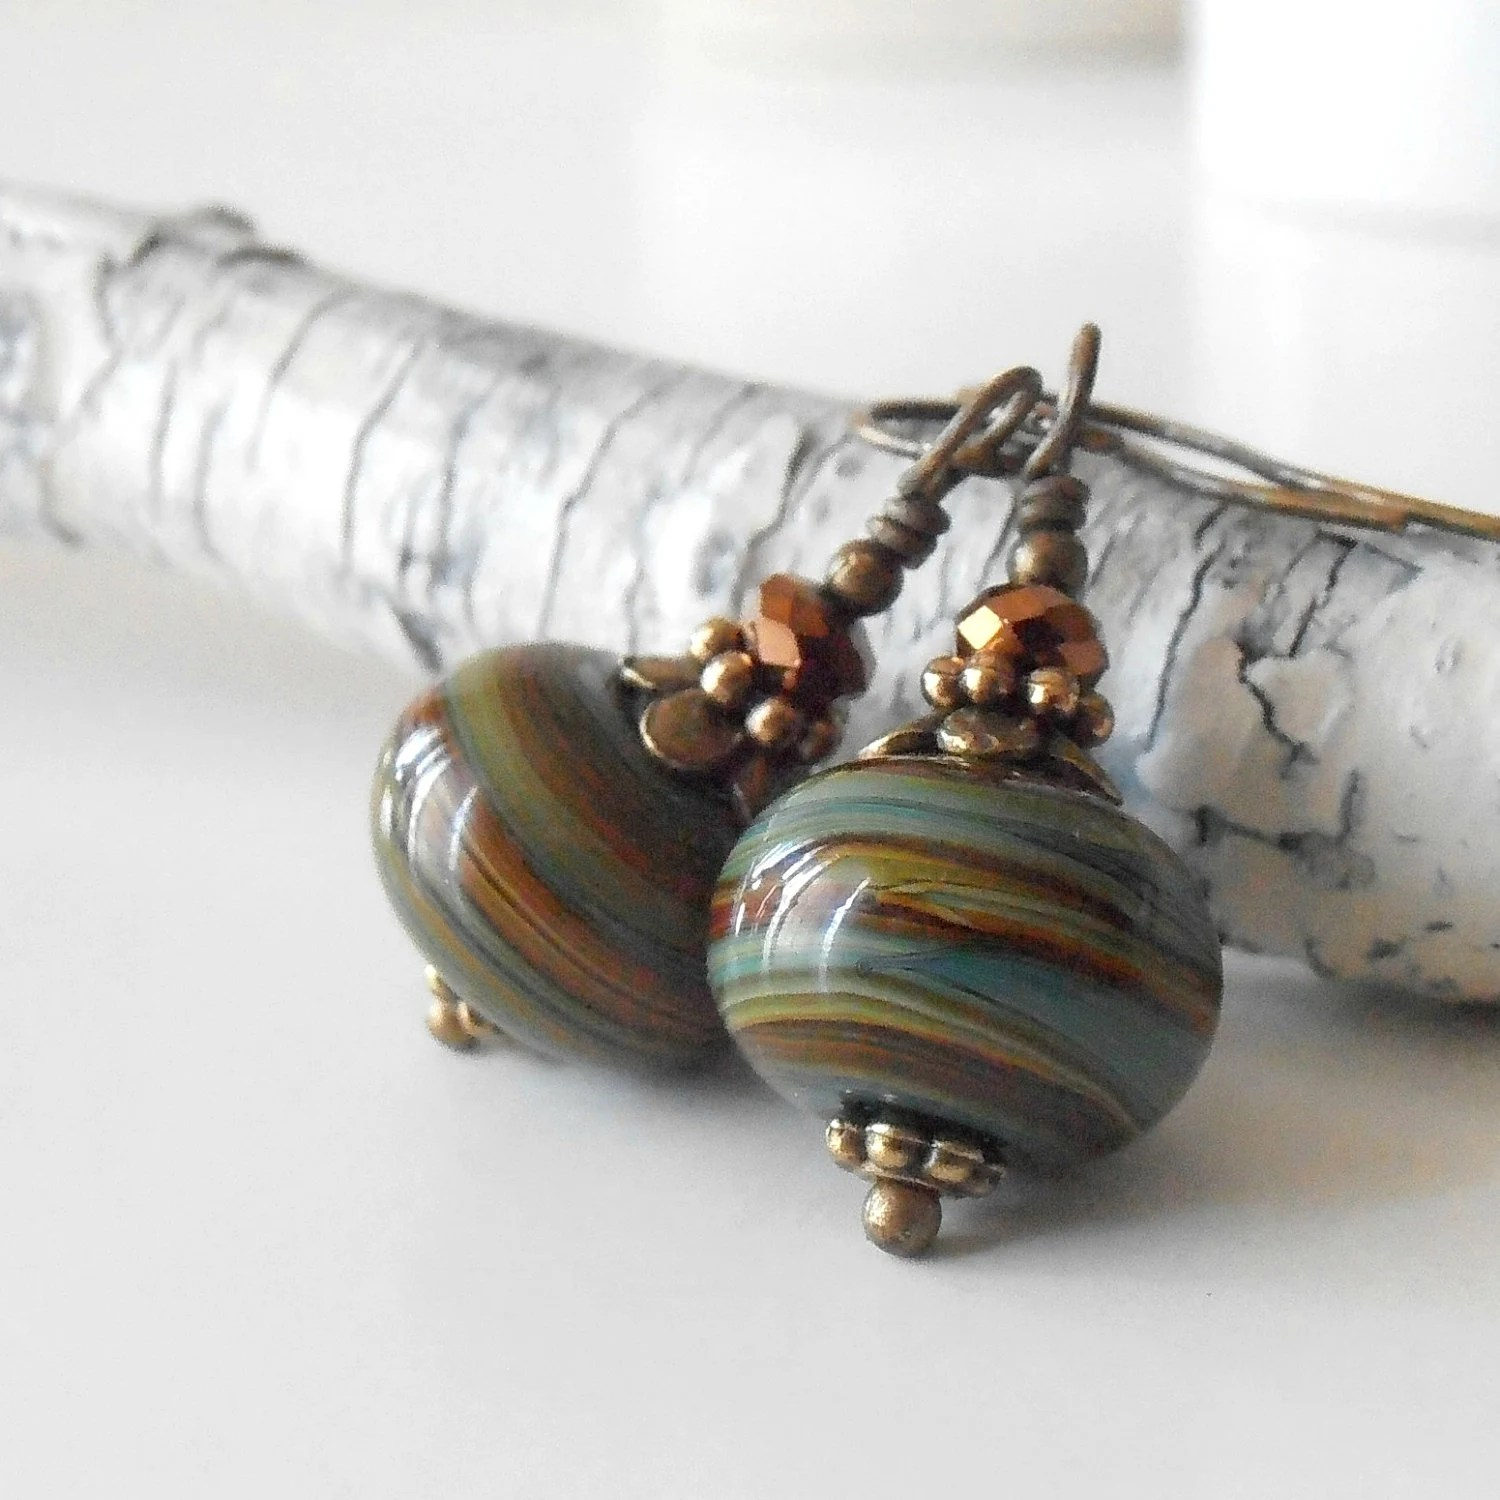 Glass Bead Earrings Green and Brown Lampwork Dangles Woodland Style Antiqued Bronze Earthtone Casual Beaded Jewelry - CopperNichols